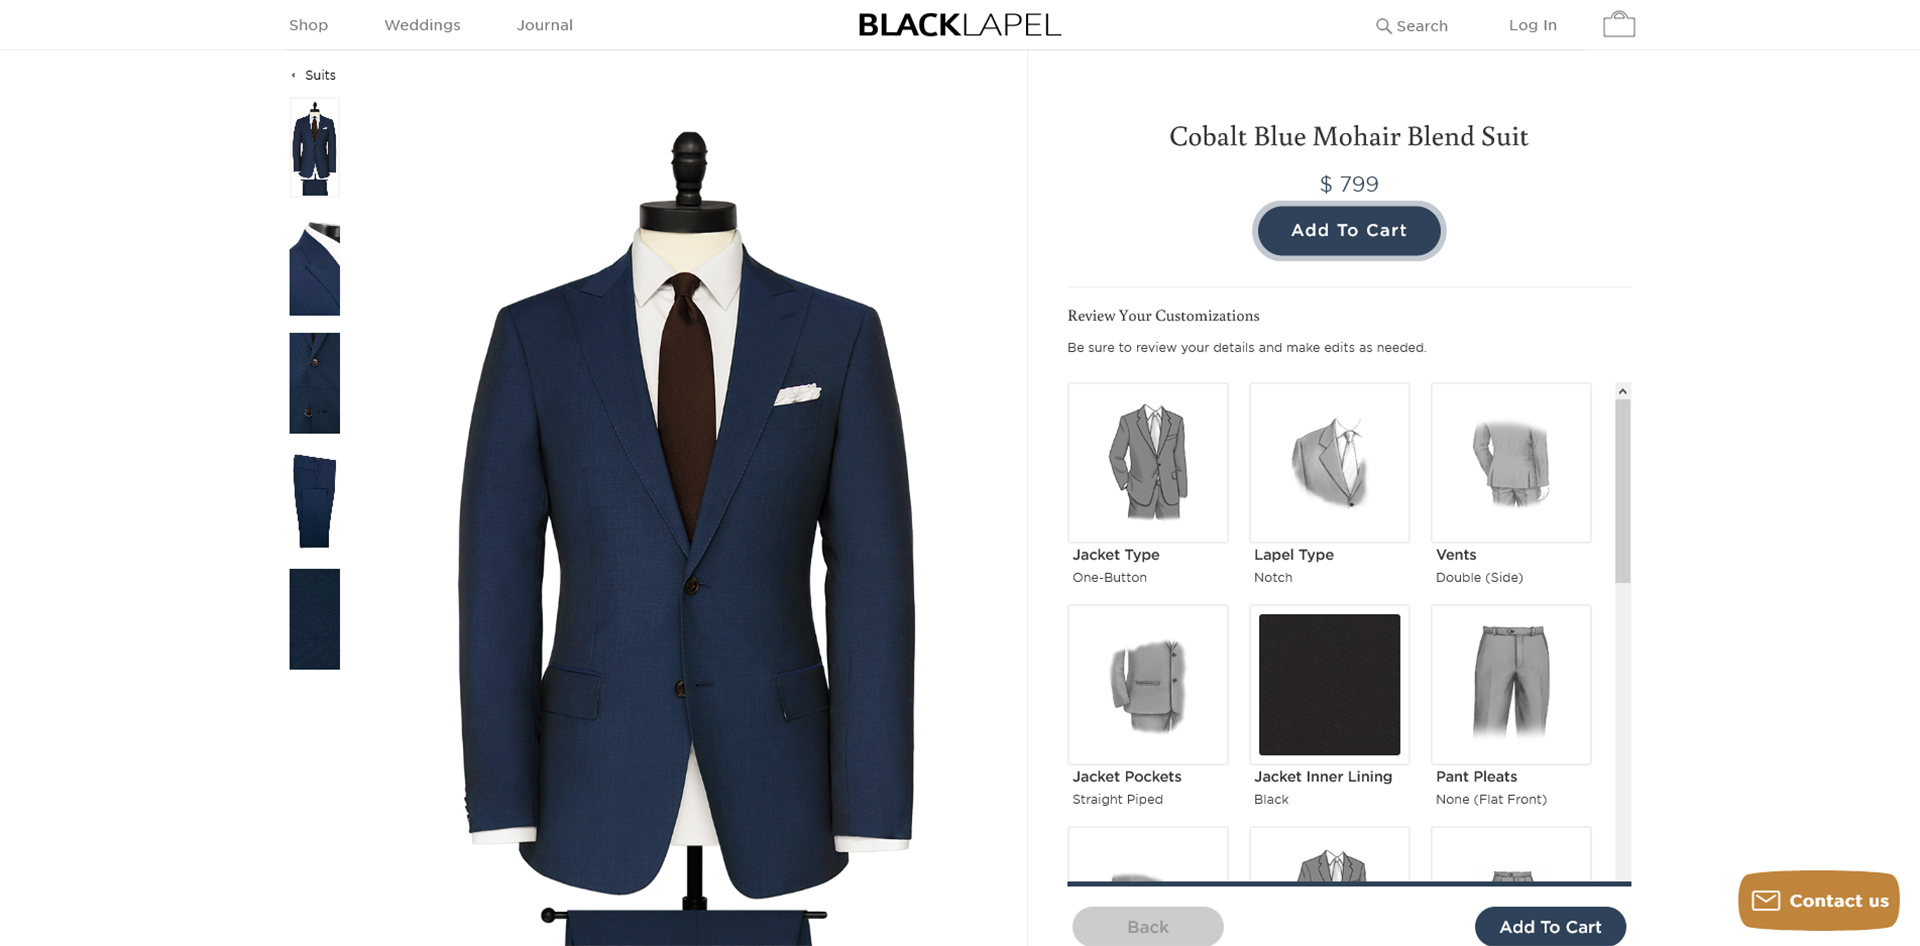 Black Lapel made-to-measure suit style & design options